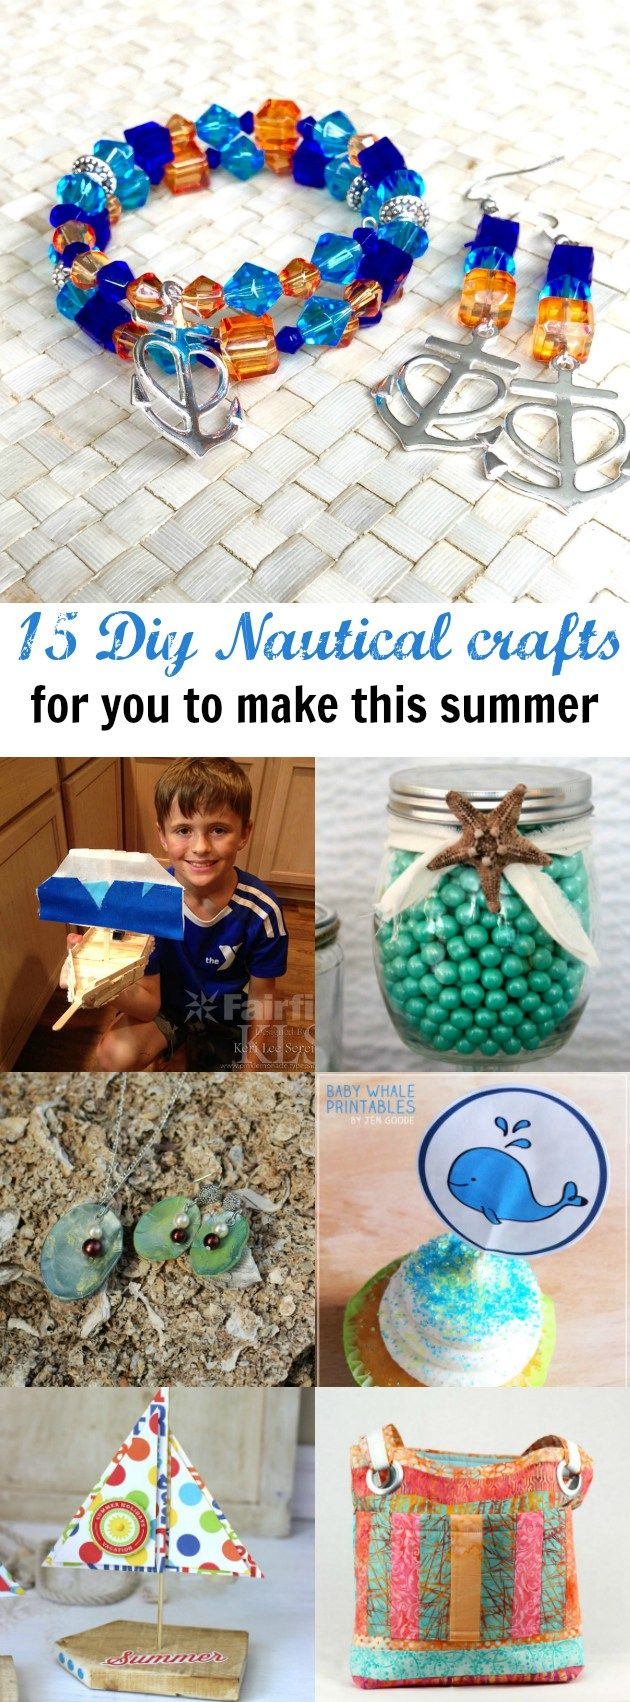 Nautical crafts to make - Diy Nautical Inspired Crafts You Can Make This Summer Craft Ideas For All Skill Levels